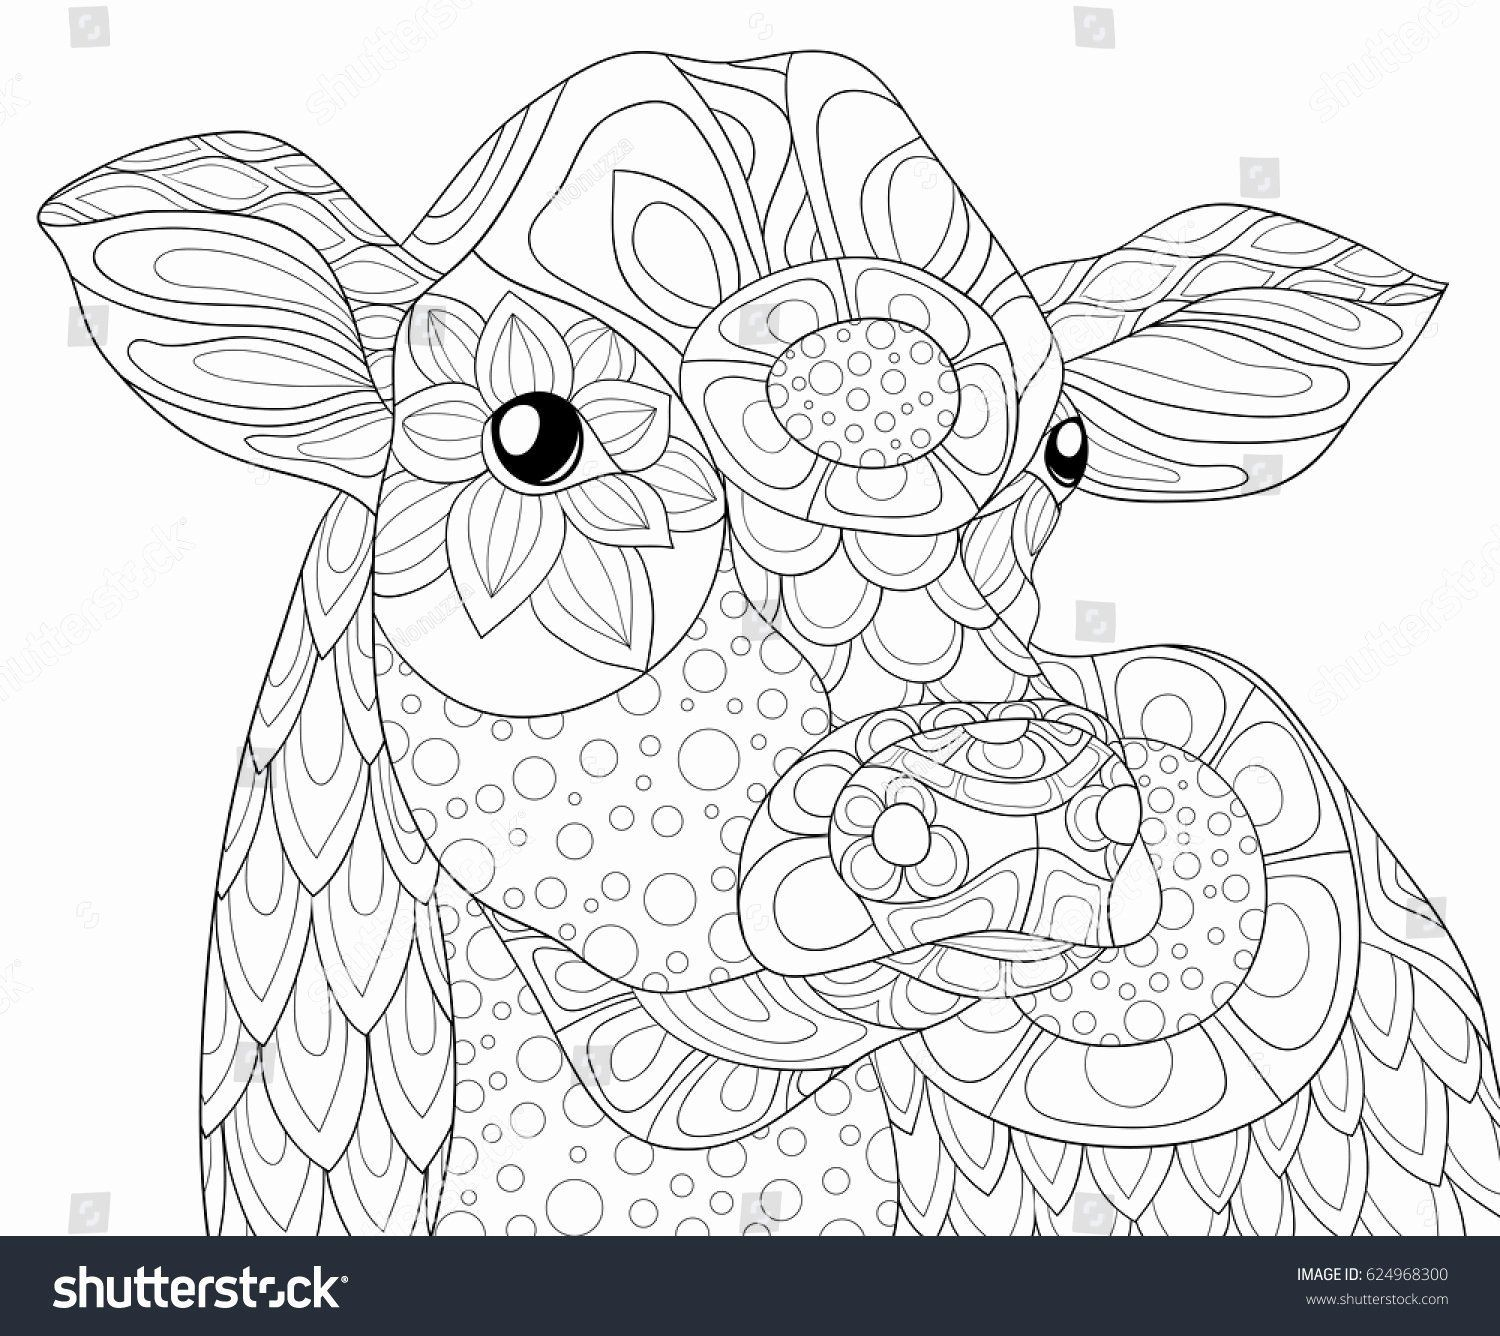 Farm Animals For Coloring Beautiful Cow Coloring Pages Farm Animals For Coloring Beauti Cow Coloring Pages Farm Animal Coloring Pages Mandala Coloring Pages